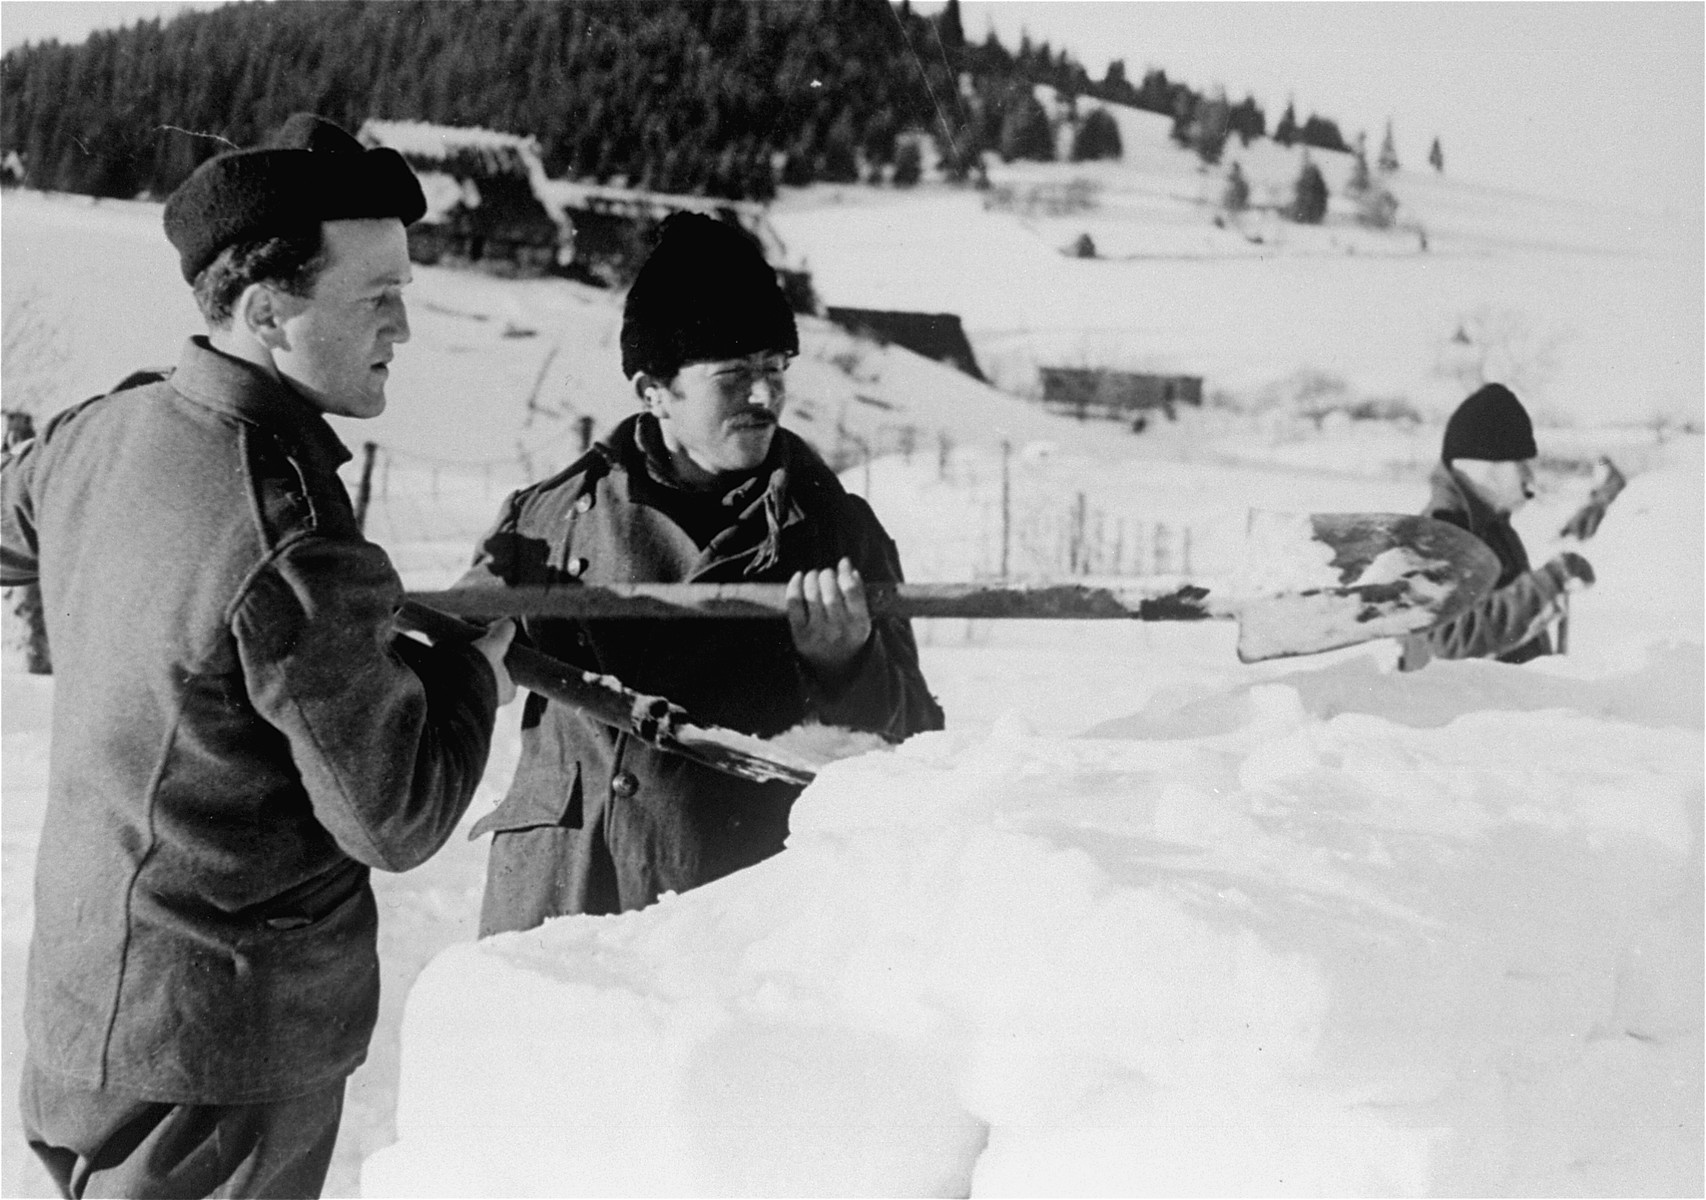 Jewish conscripts in Company 108/57 of the Hungarian Labor Service at forced labor clearing snow from a road.  These men are constructing a barricade against drifting snow.